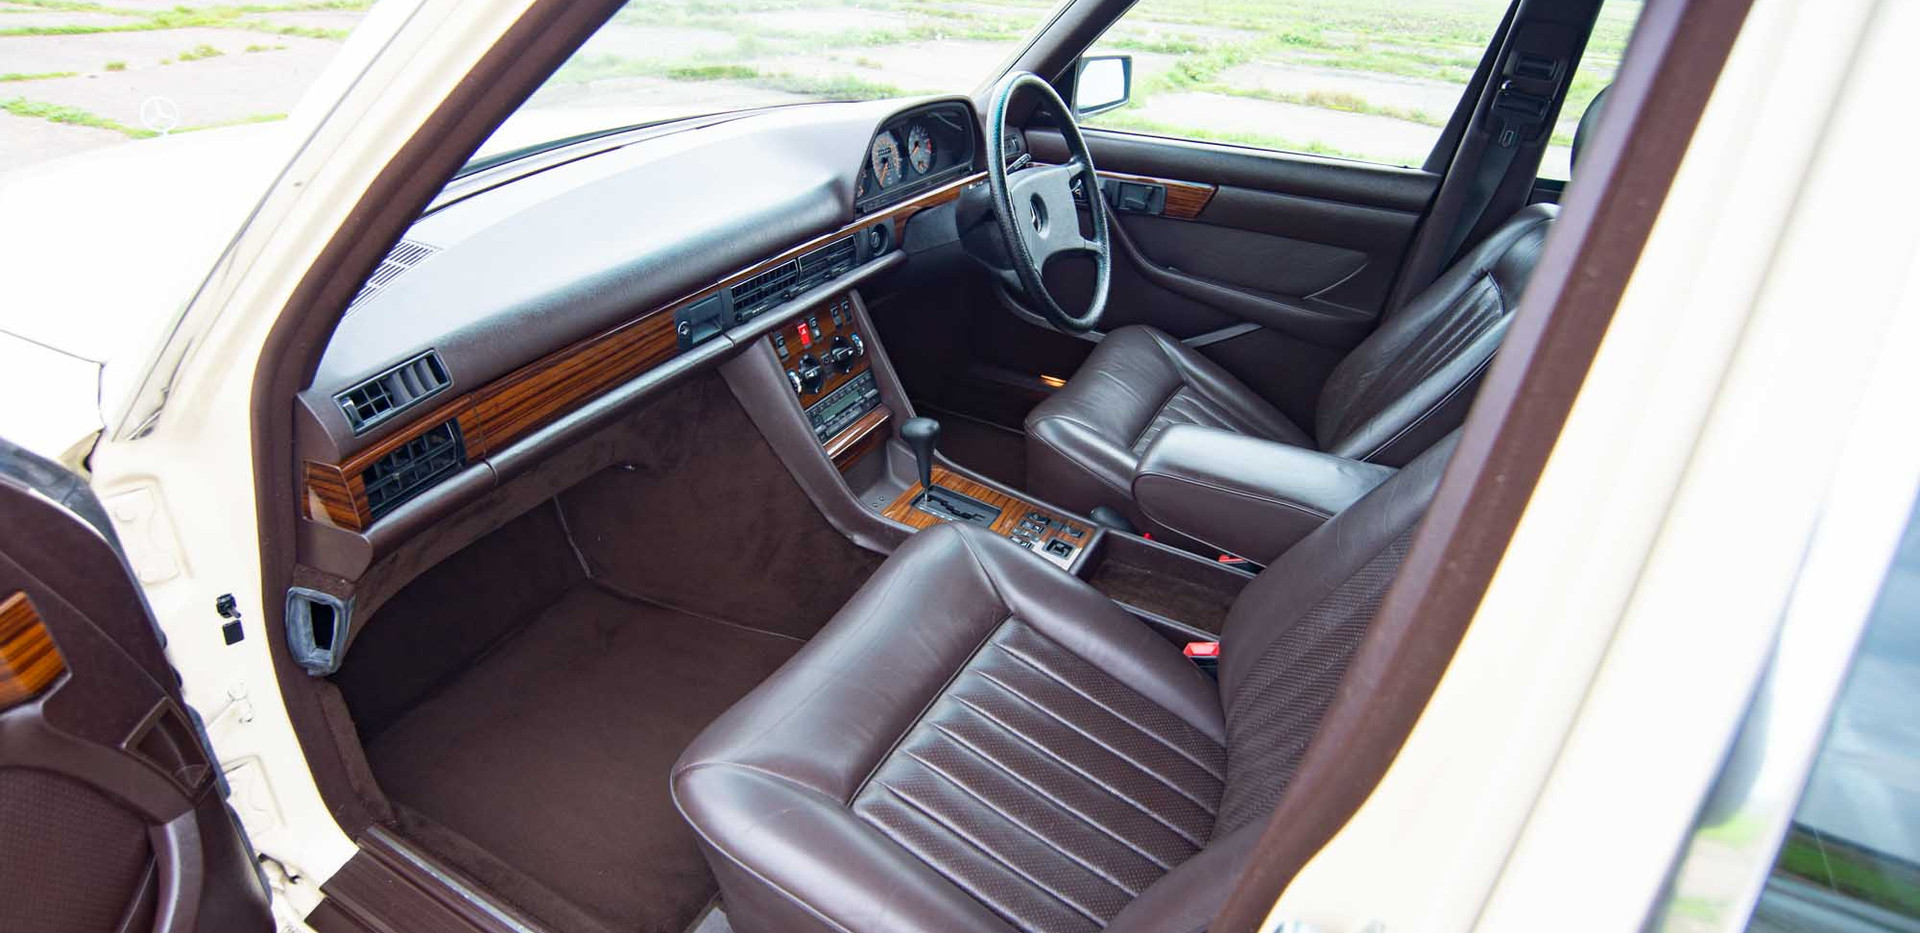 W126 500SEL For sale uk-16.jpg